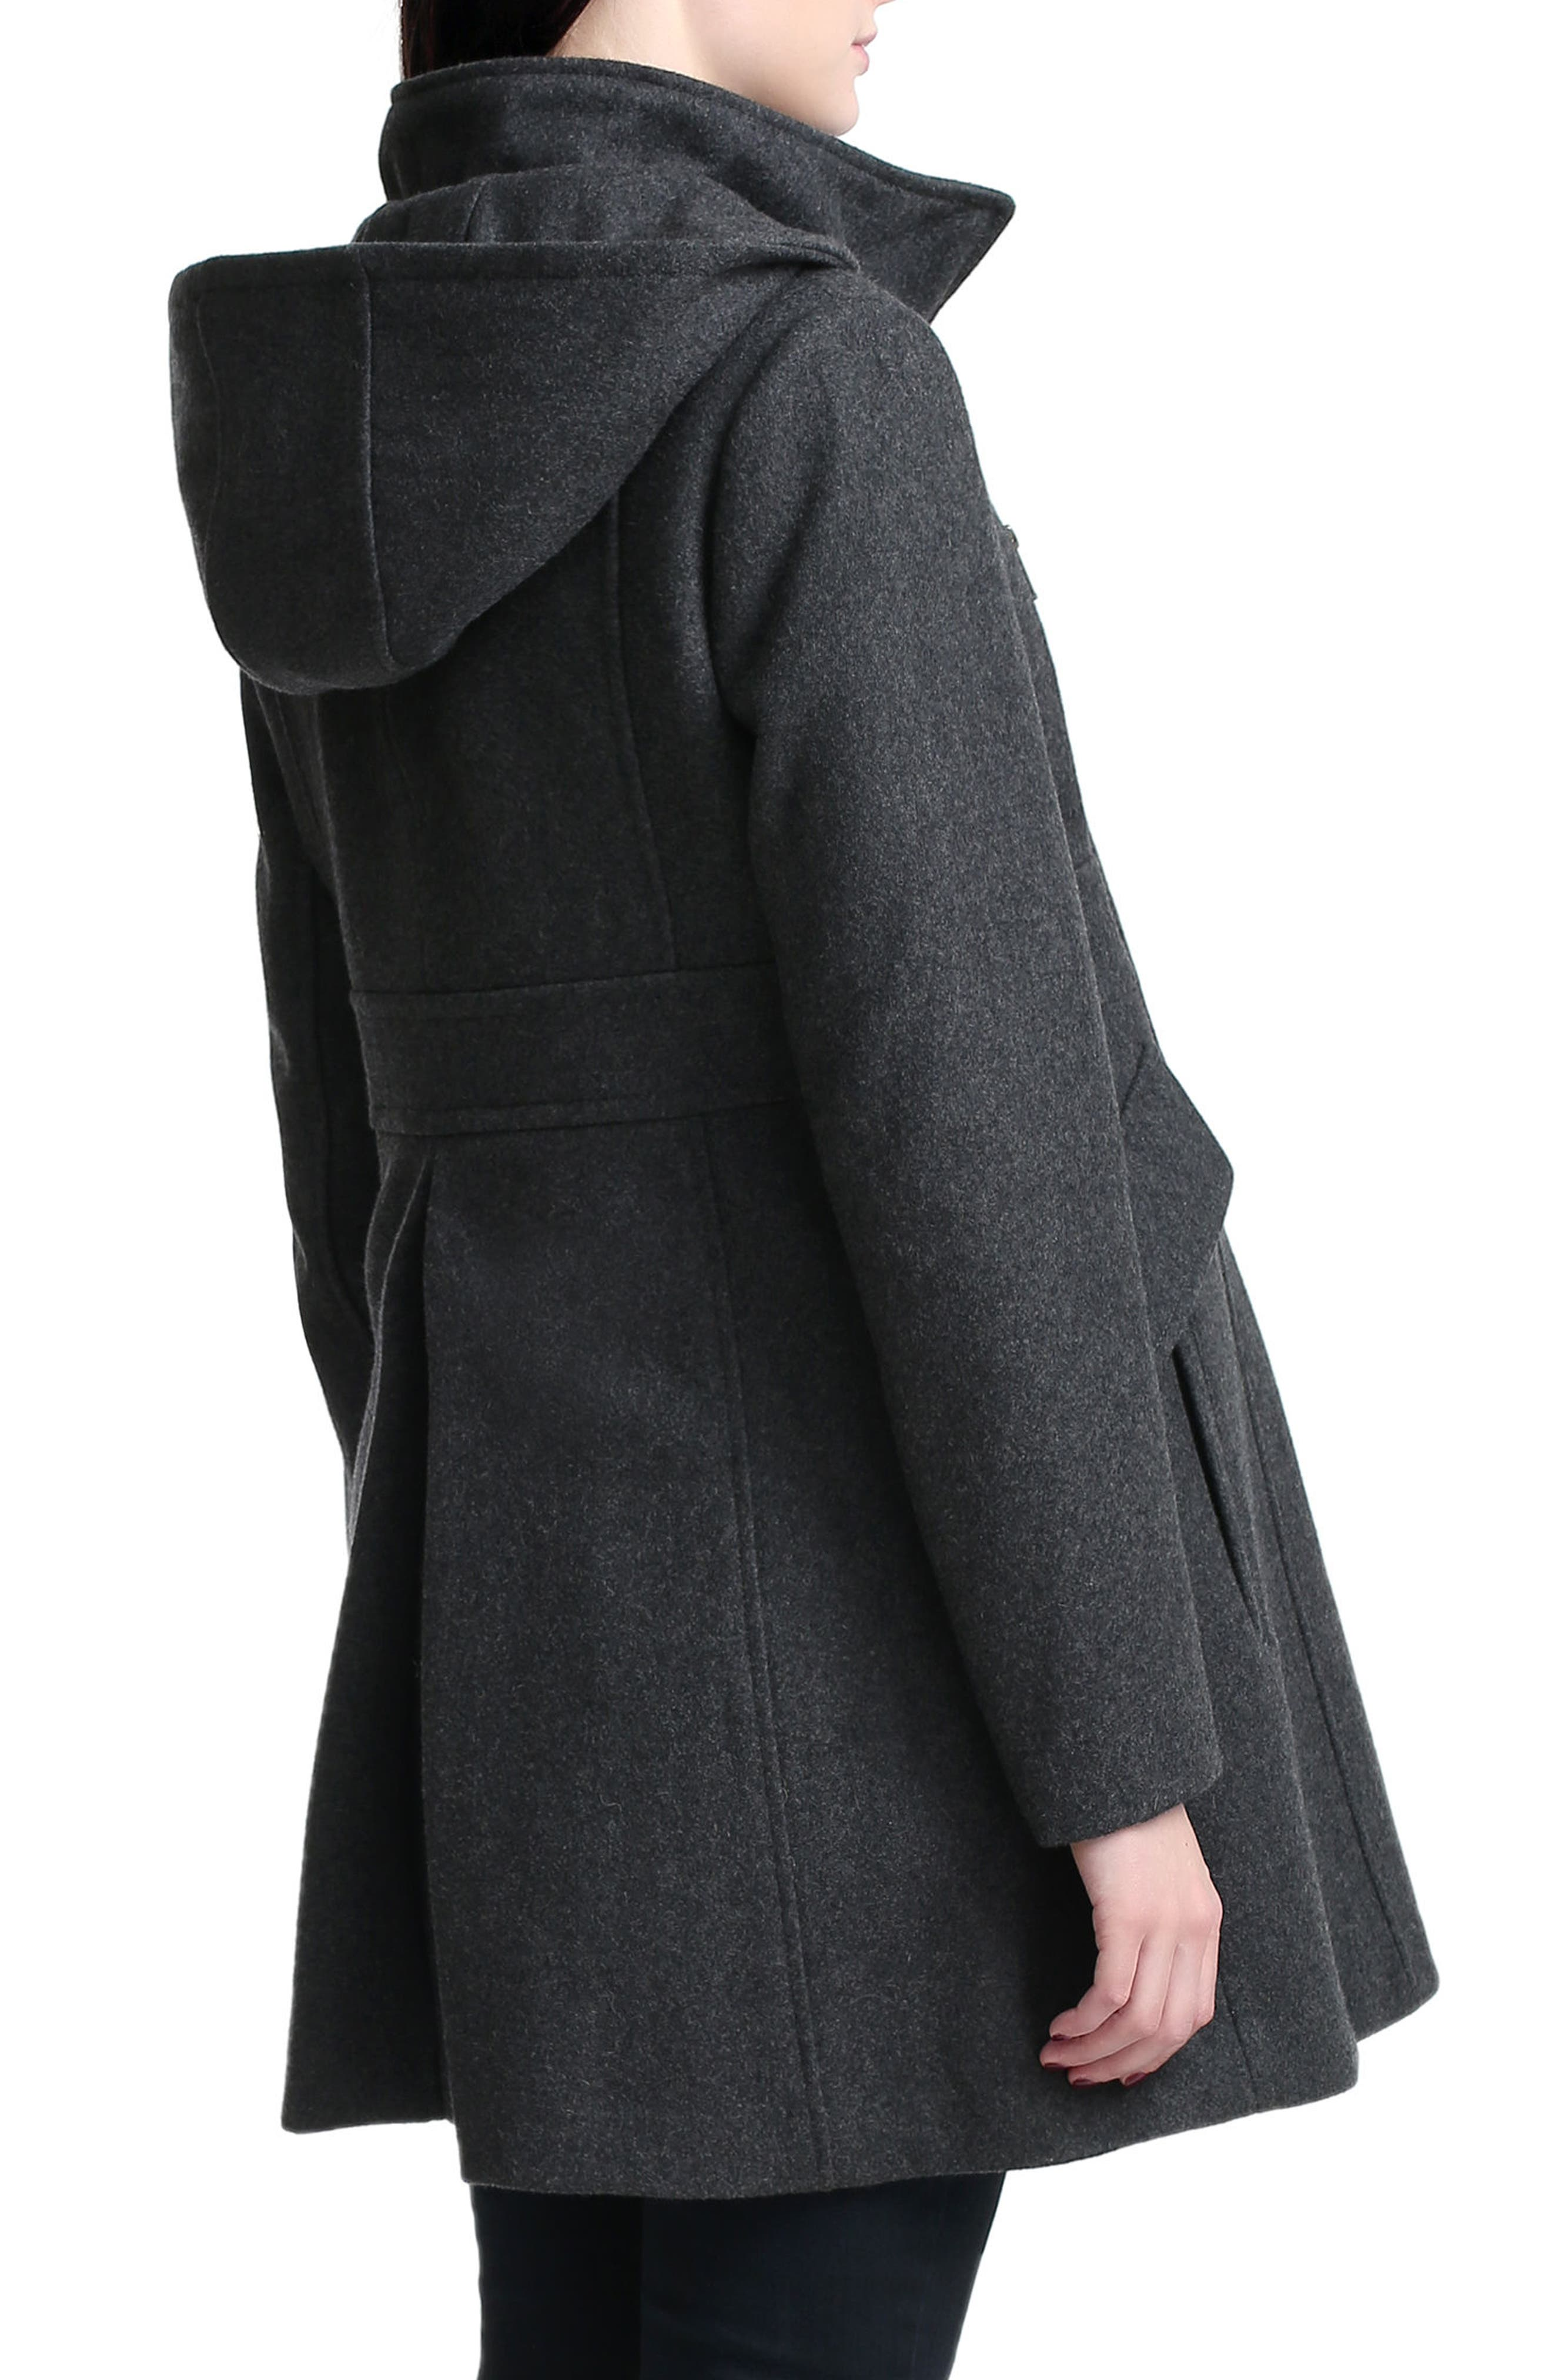 Cordella Wool Blend Hooded Maternity Coat,                             Alternate thumbnail 3, color,                             DARK HEATHER GRAY